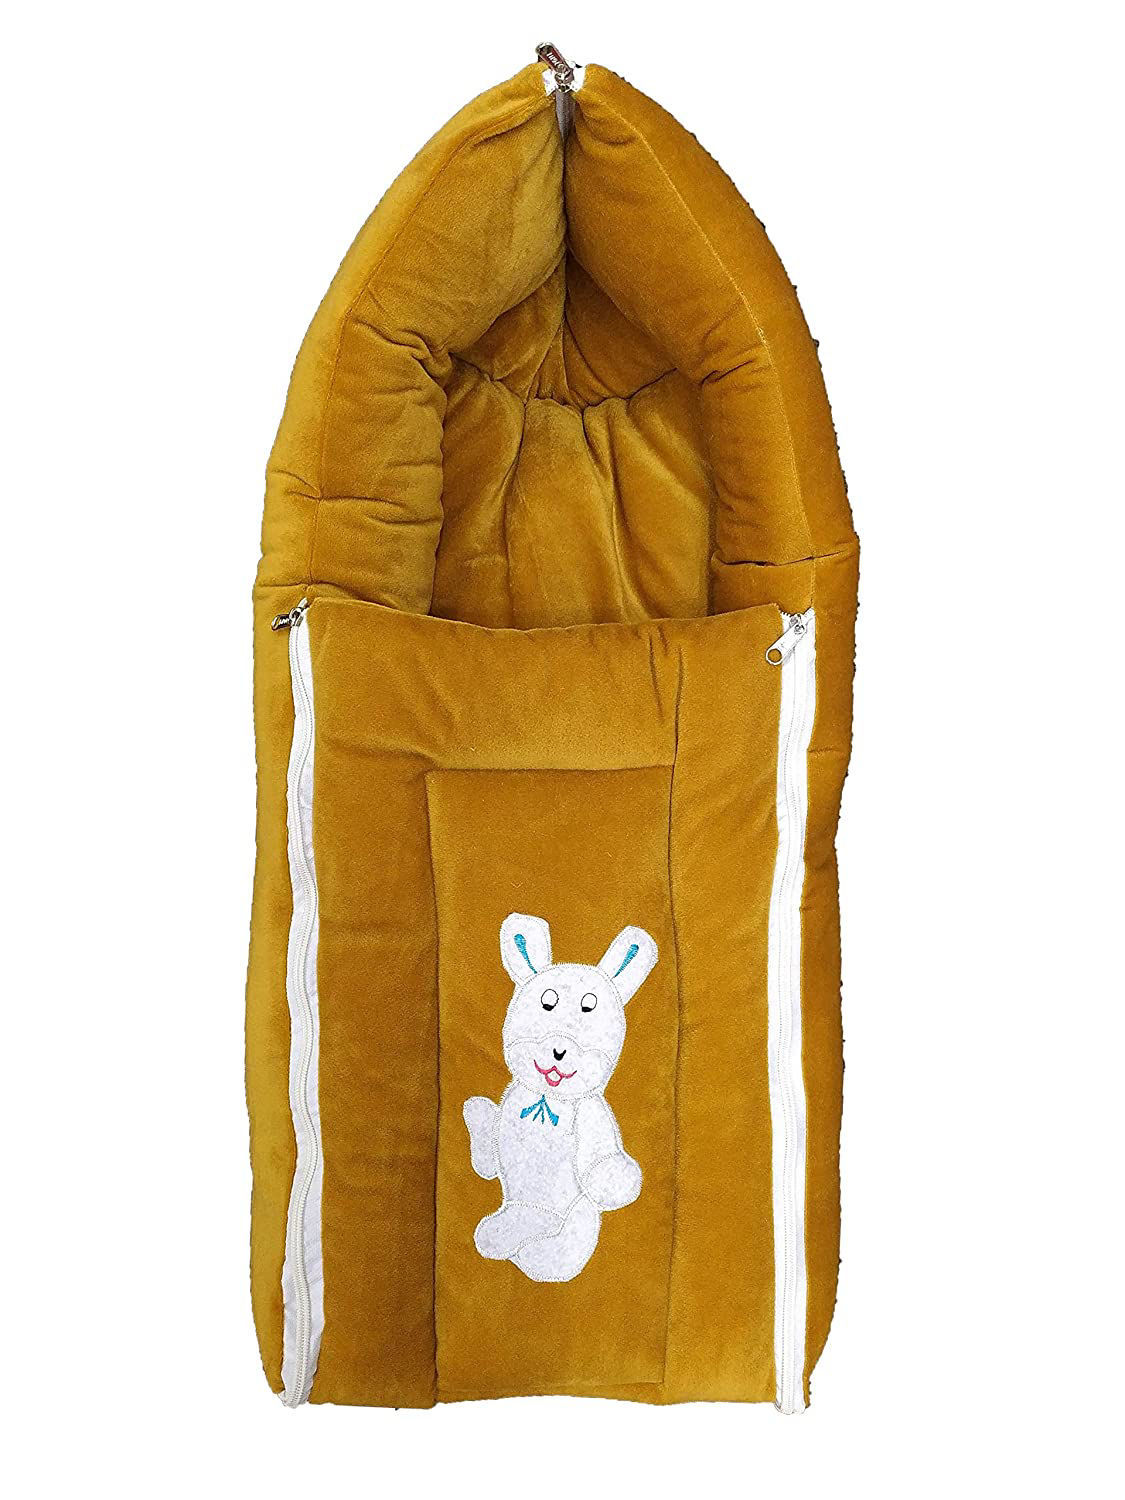 Sleeping and Carry Bag 0-6 Months -Brown